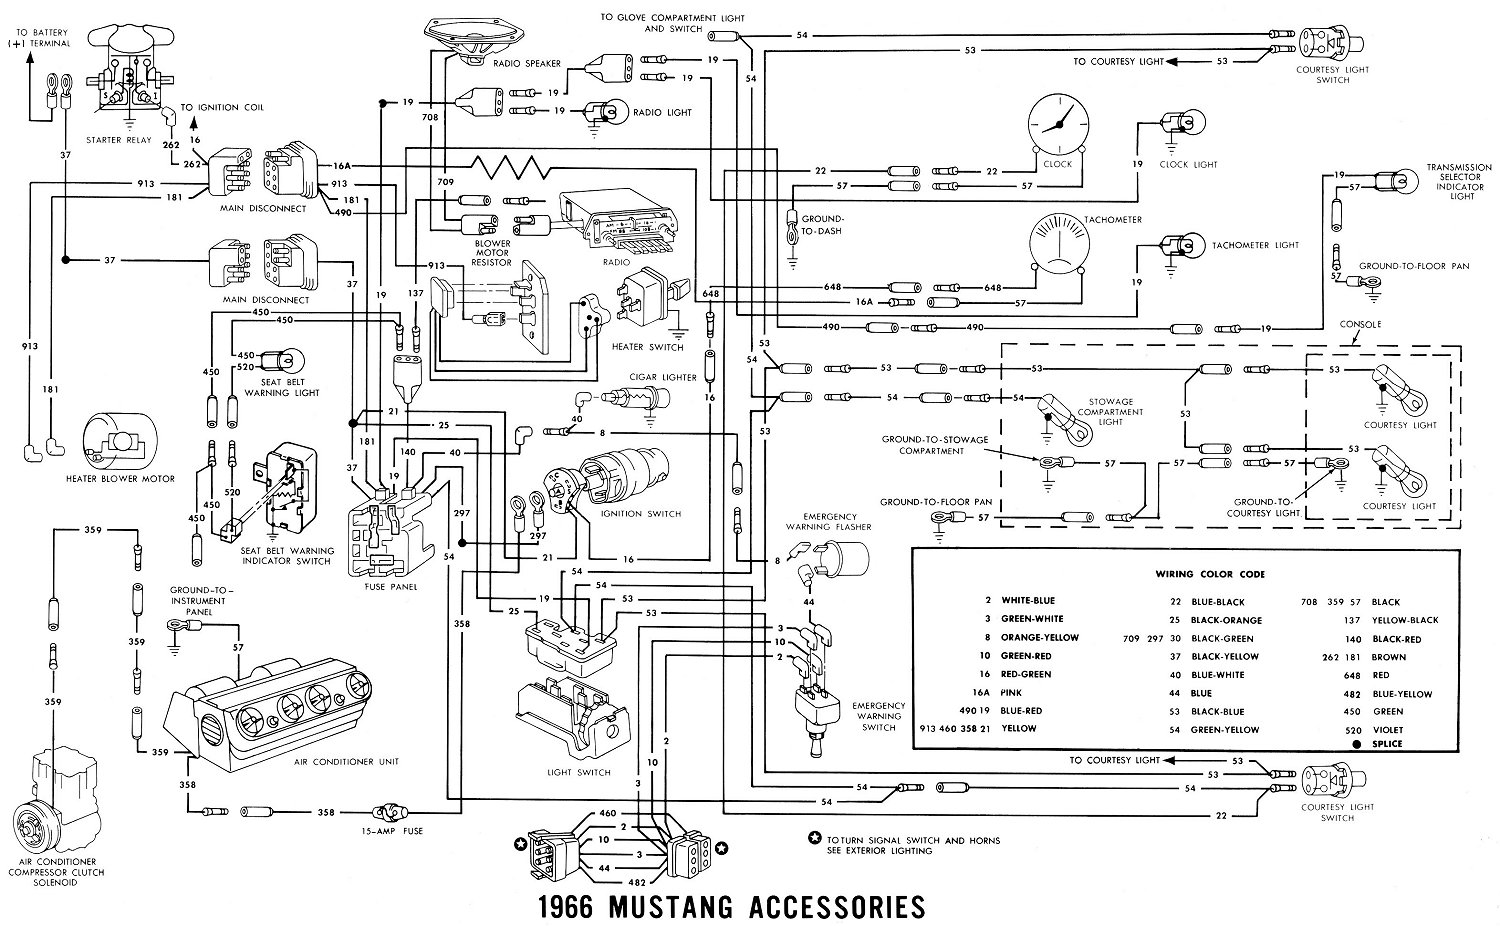 2007 Mustang Wiring Diagram Archive Of Automotive 1983 Ford Ac Harness Opinions About U2022 Rh Voterid Co Gt